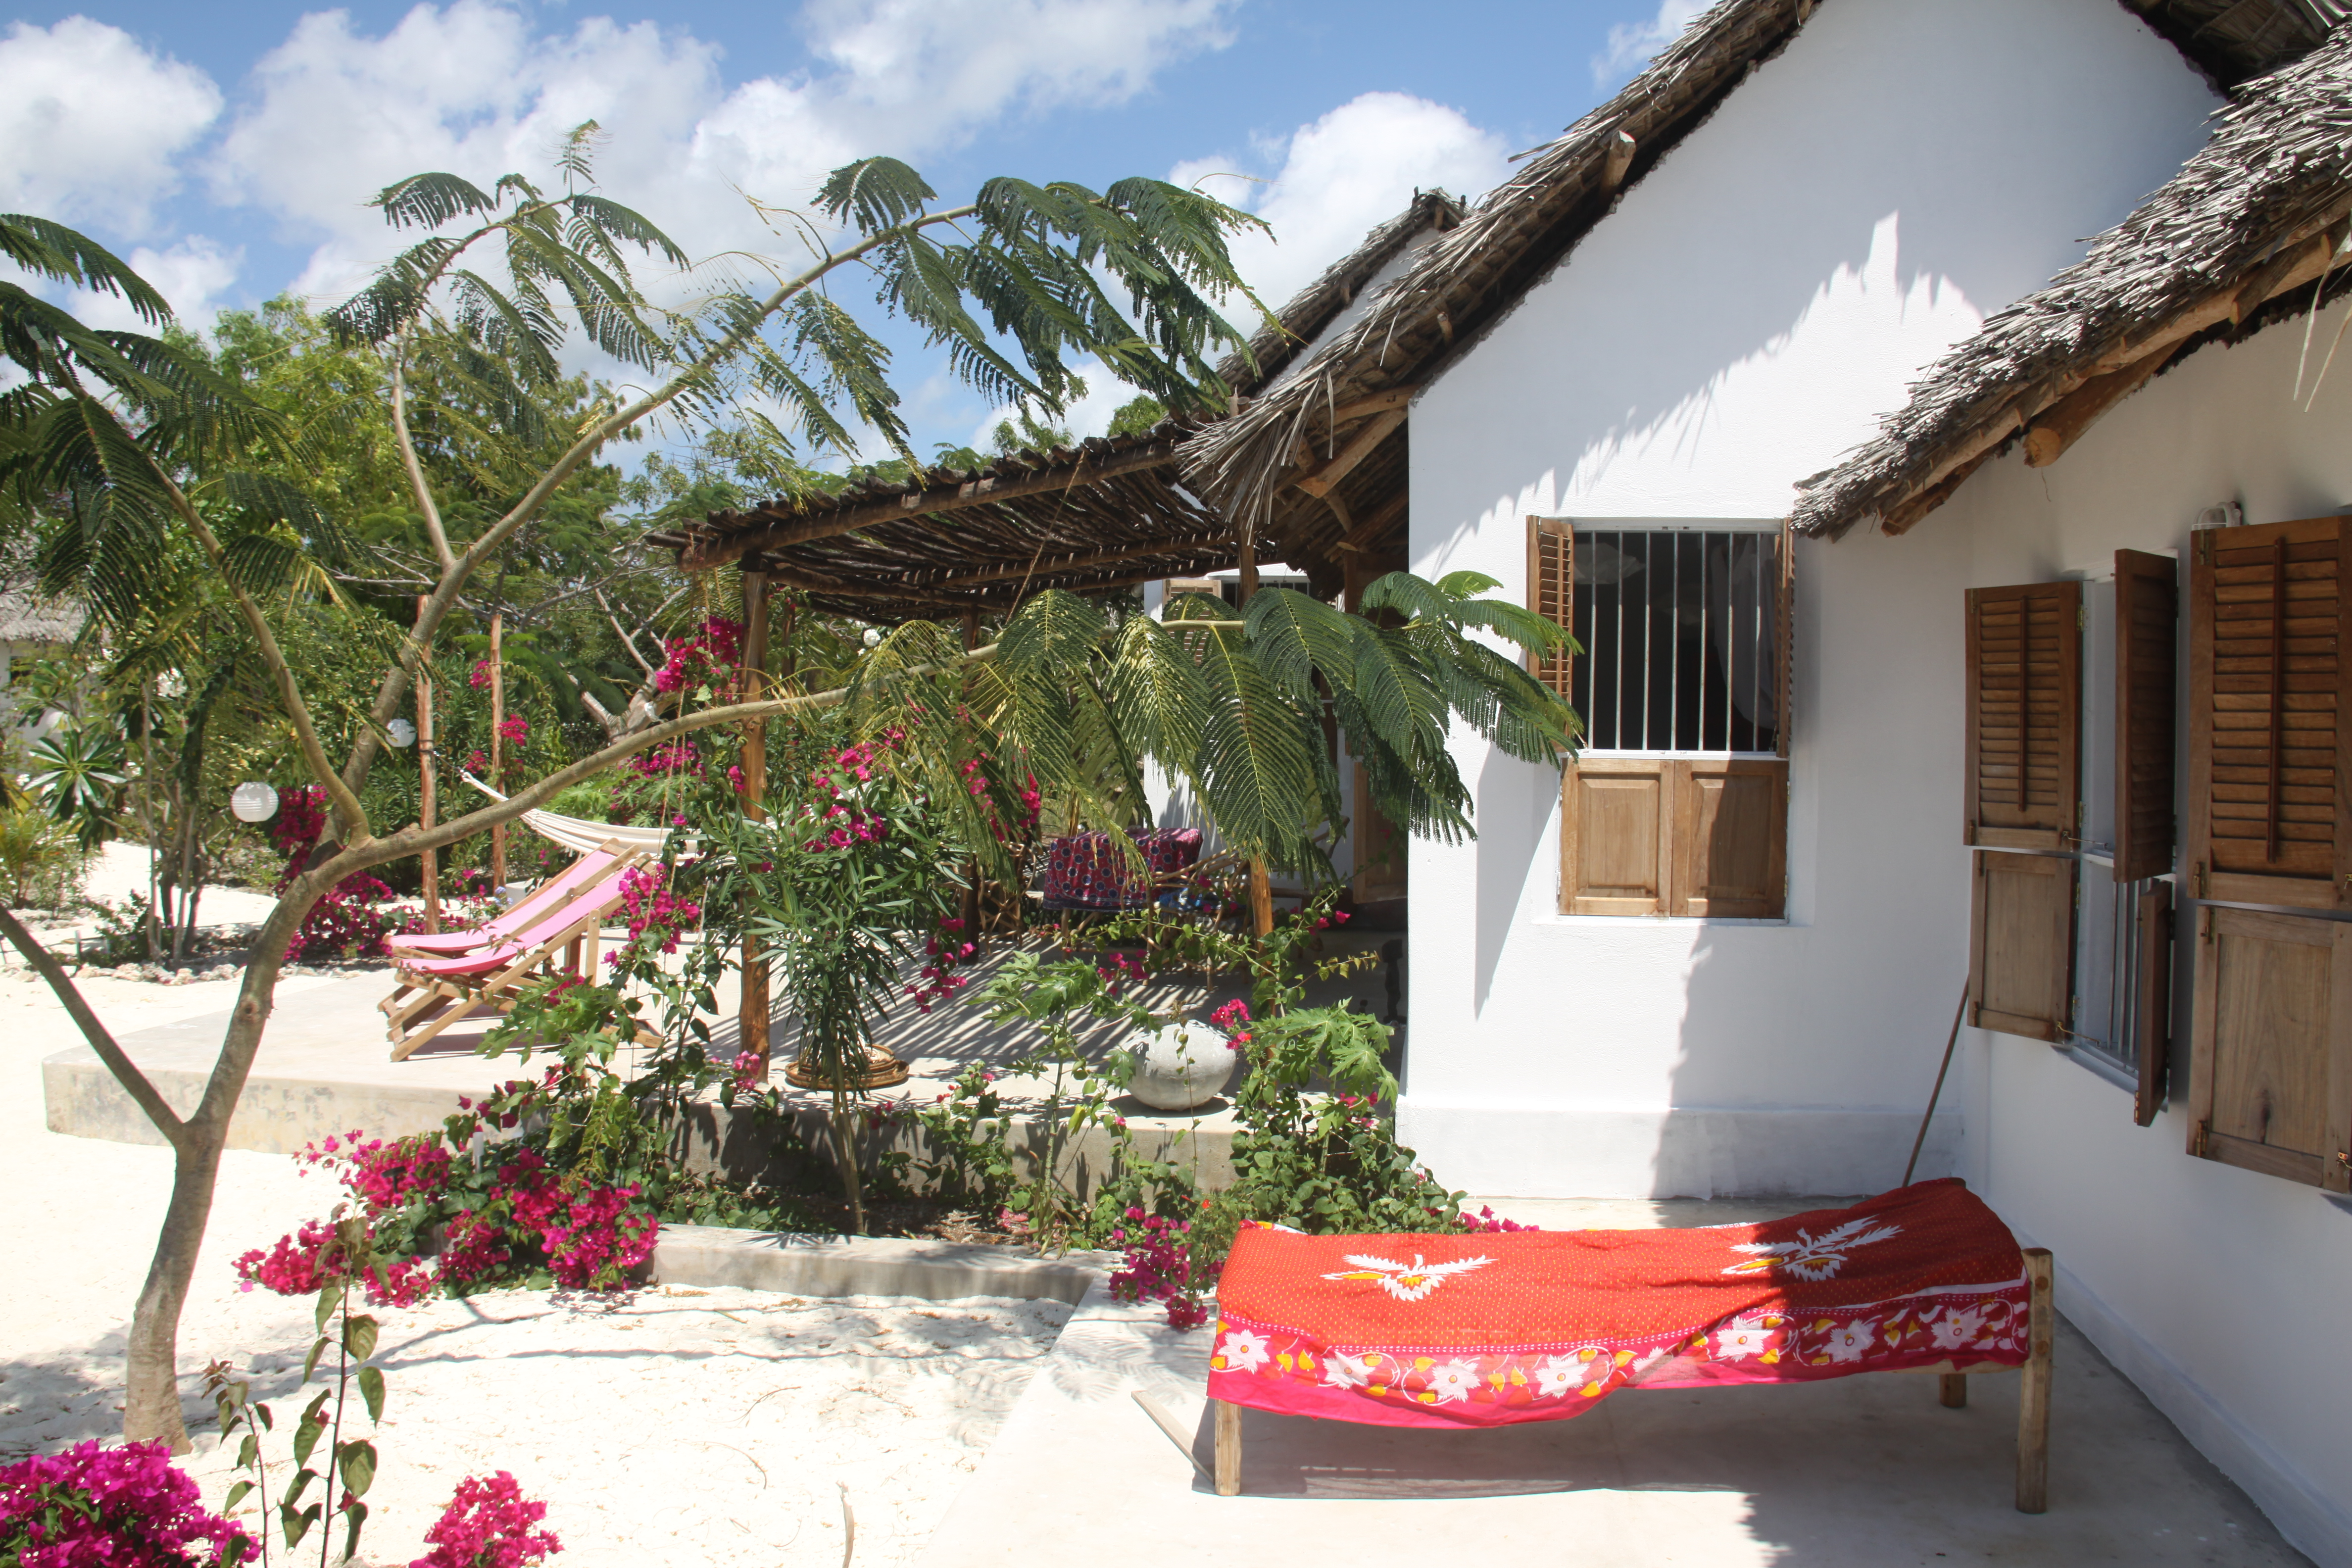 zanzibar-jambiani-papaye-verte-chambre-hotes-guesthouse-logement-hotel-vue-mer-acces-direct-plage